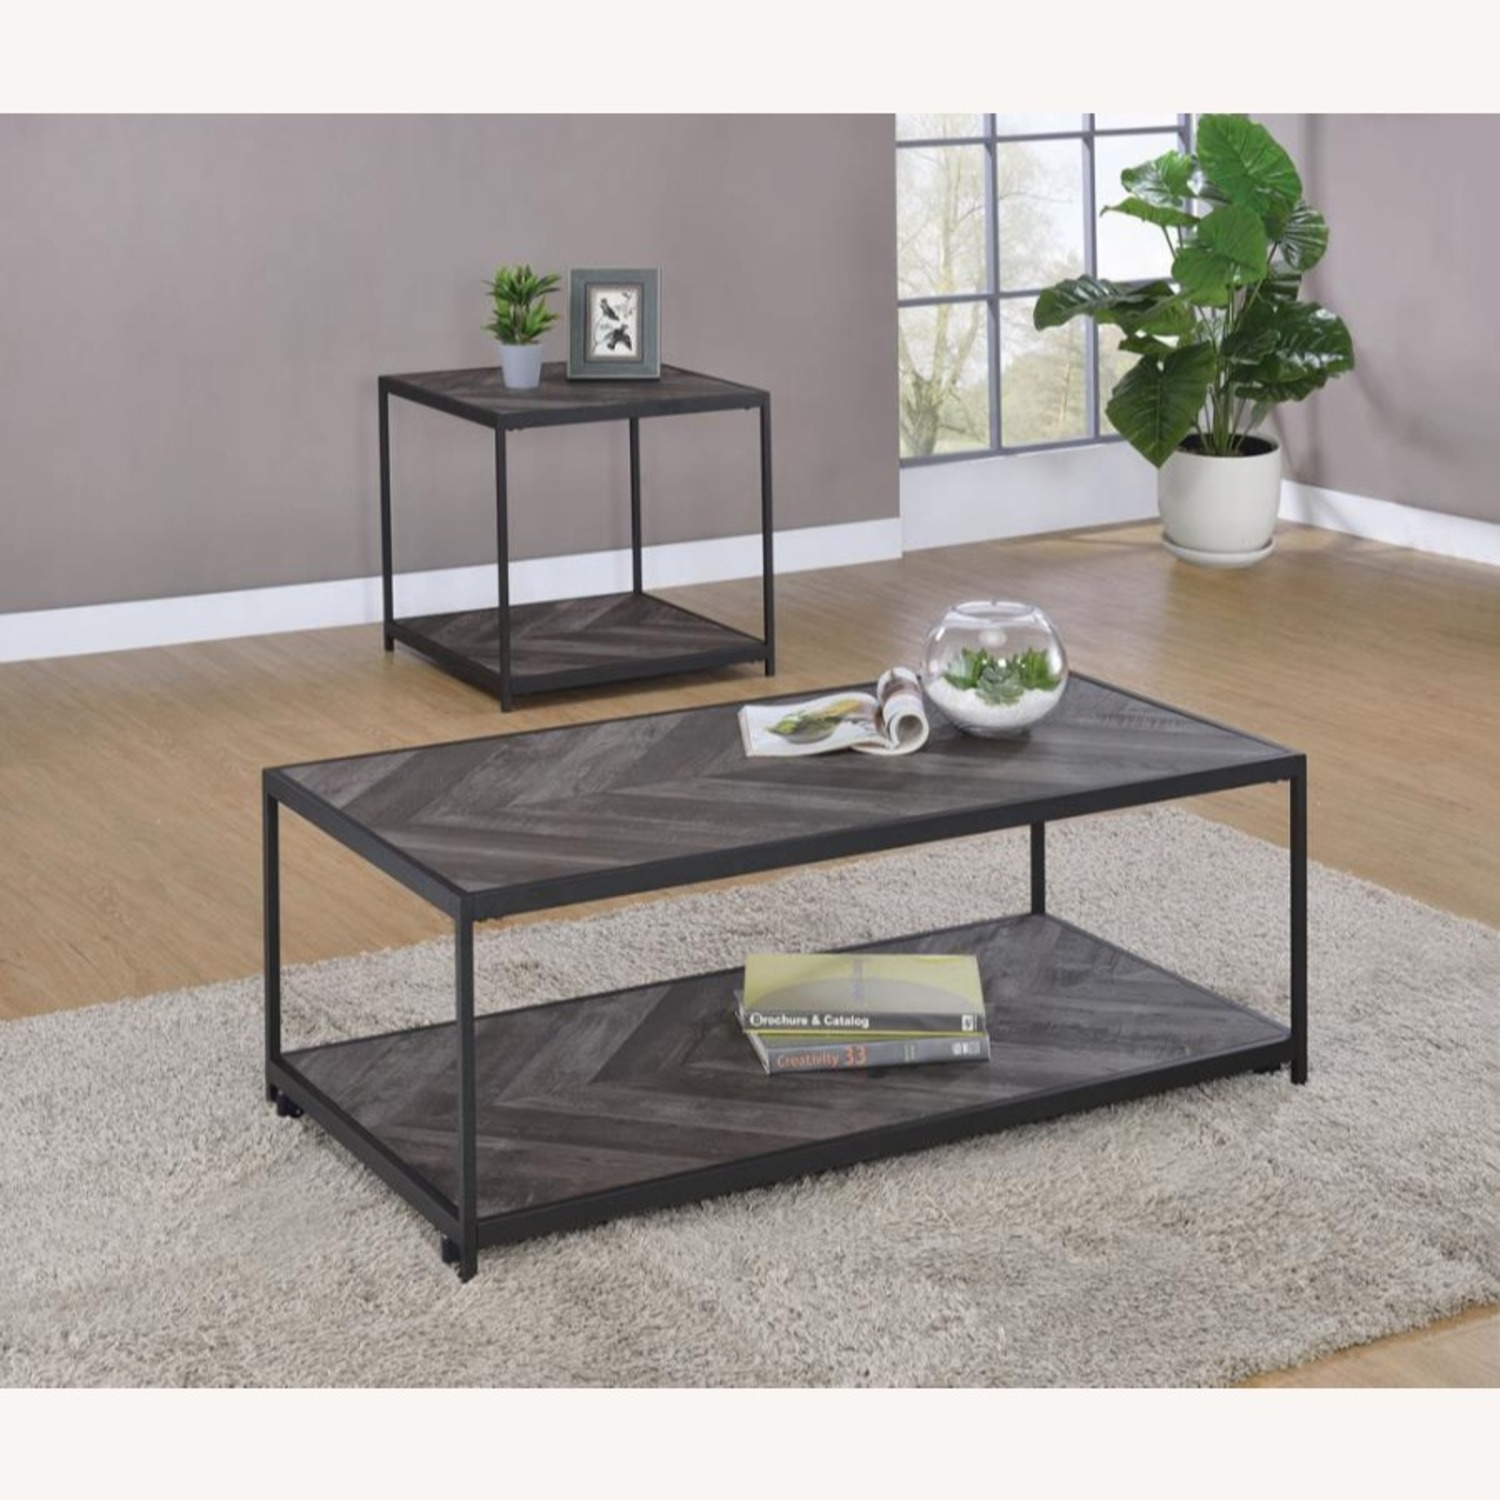 End Table W/ Metal Frame In Sandy Black Finish - image-6